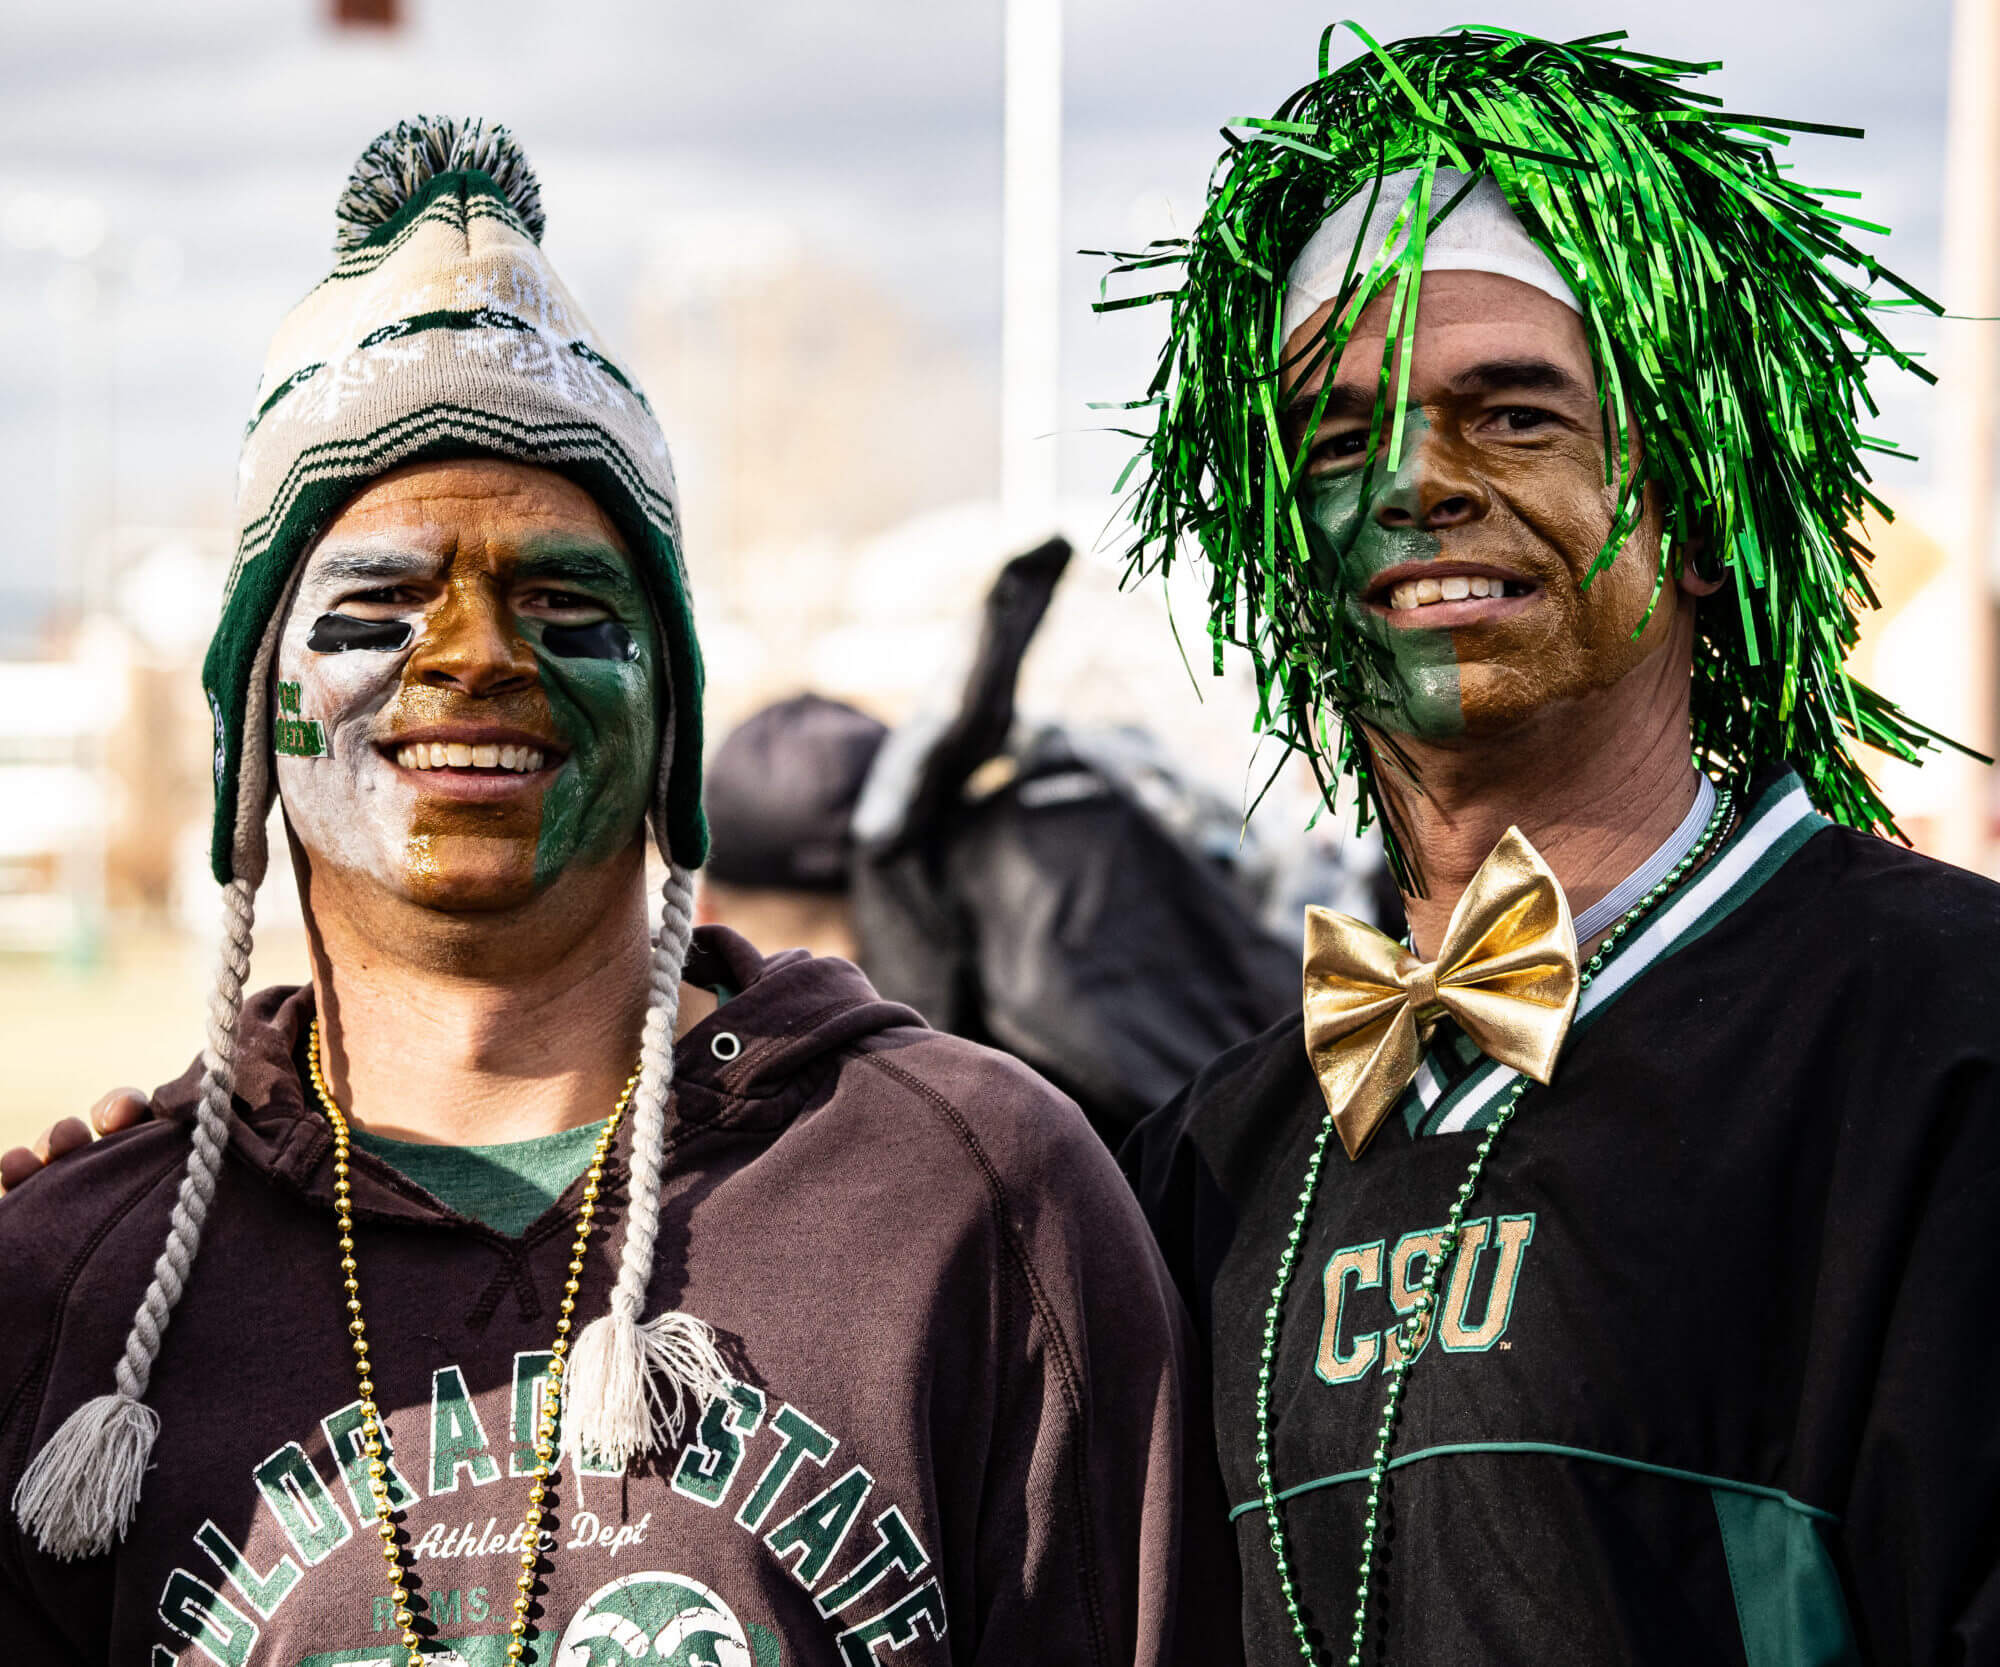 Two Colorado State College Club members dressed in spirit gear.